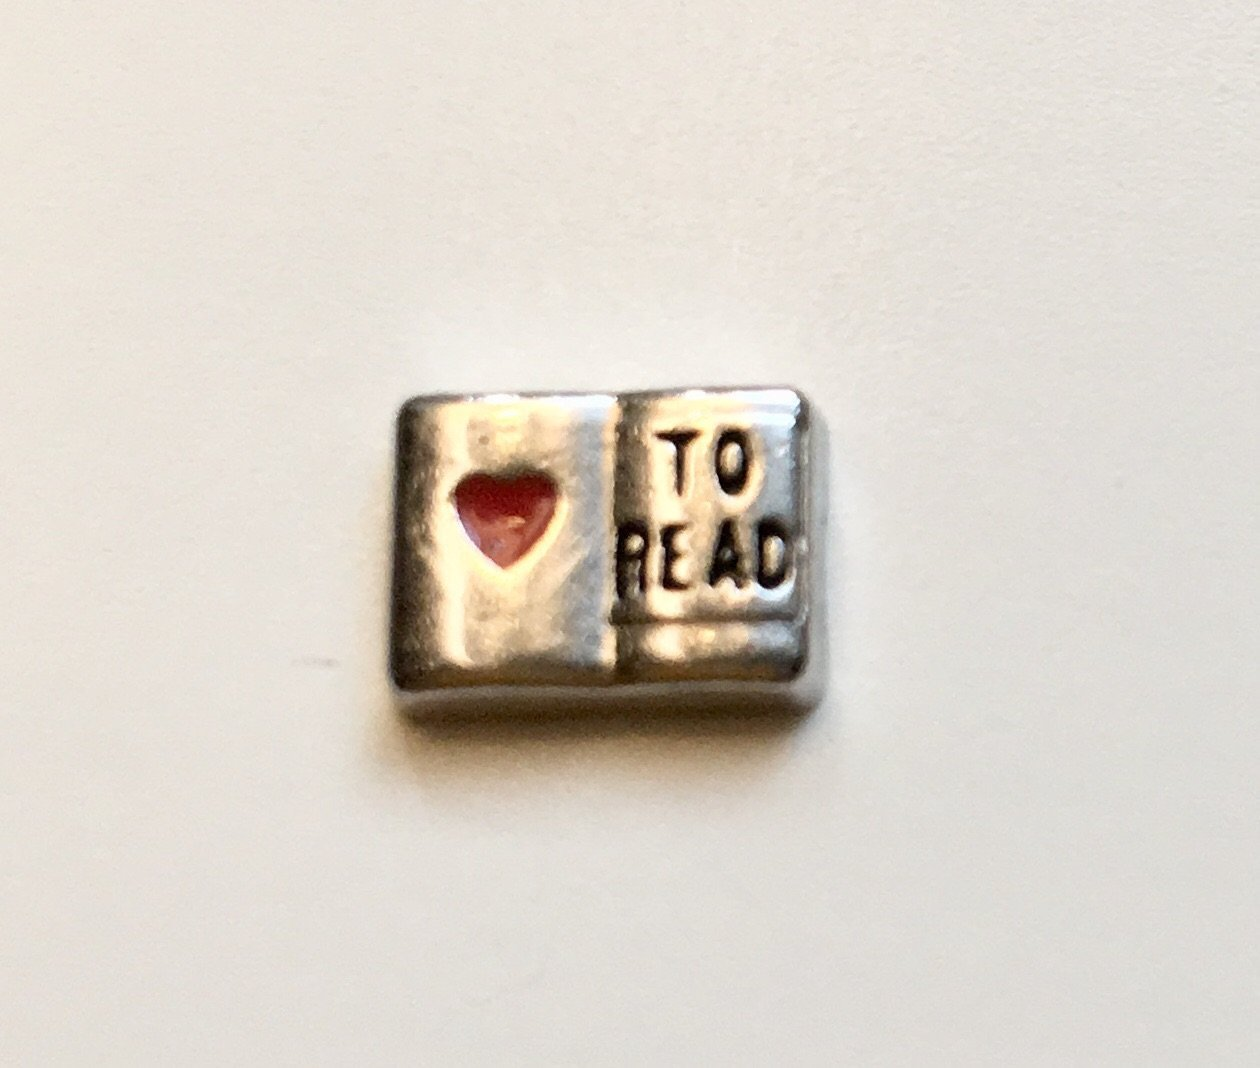 Memory Locket Charm - Love to read